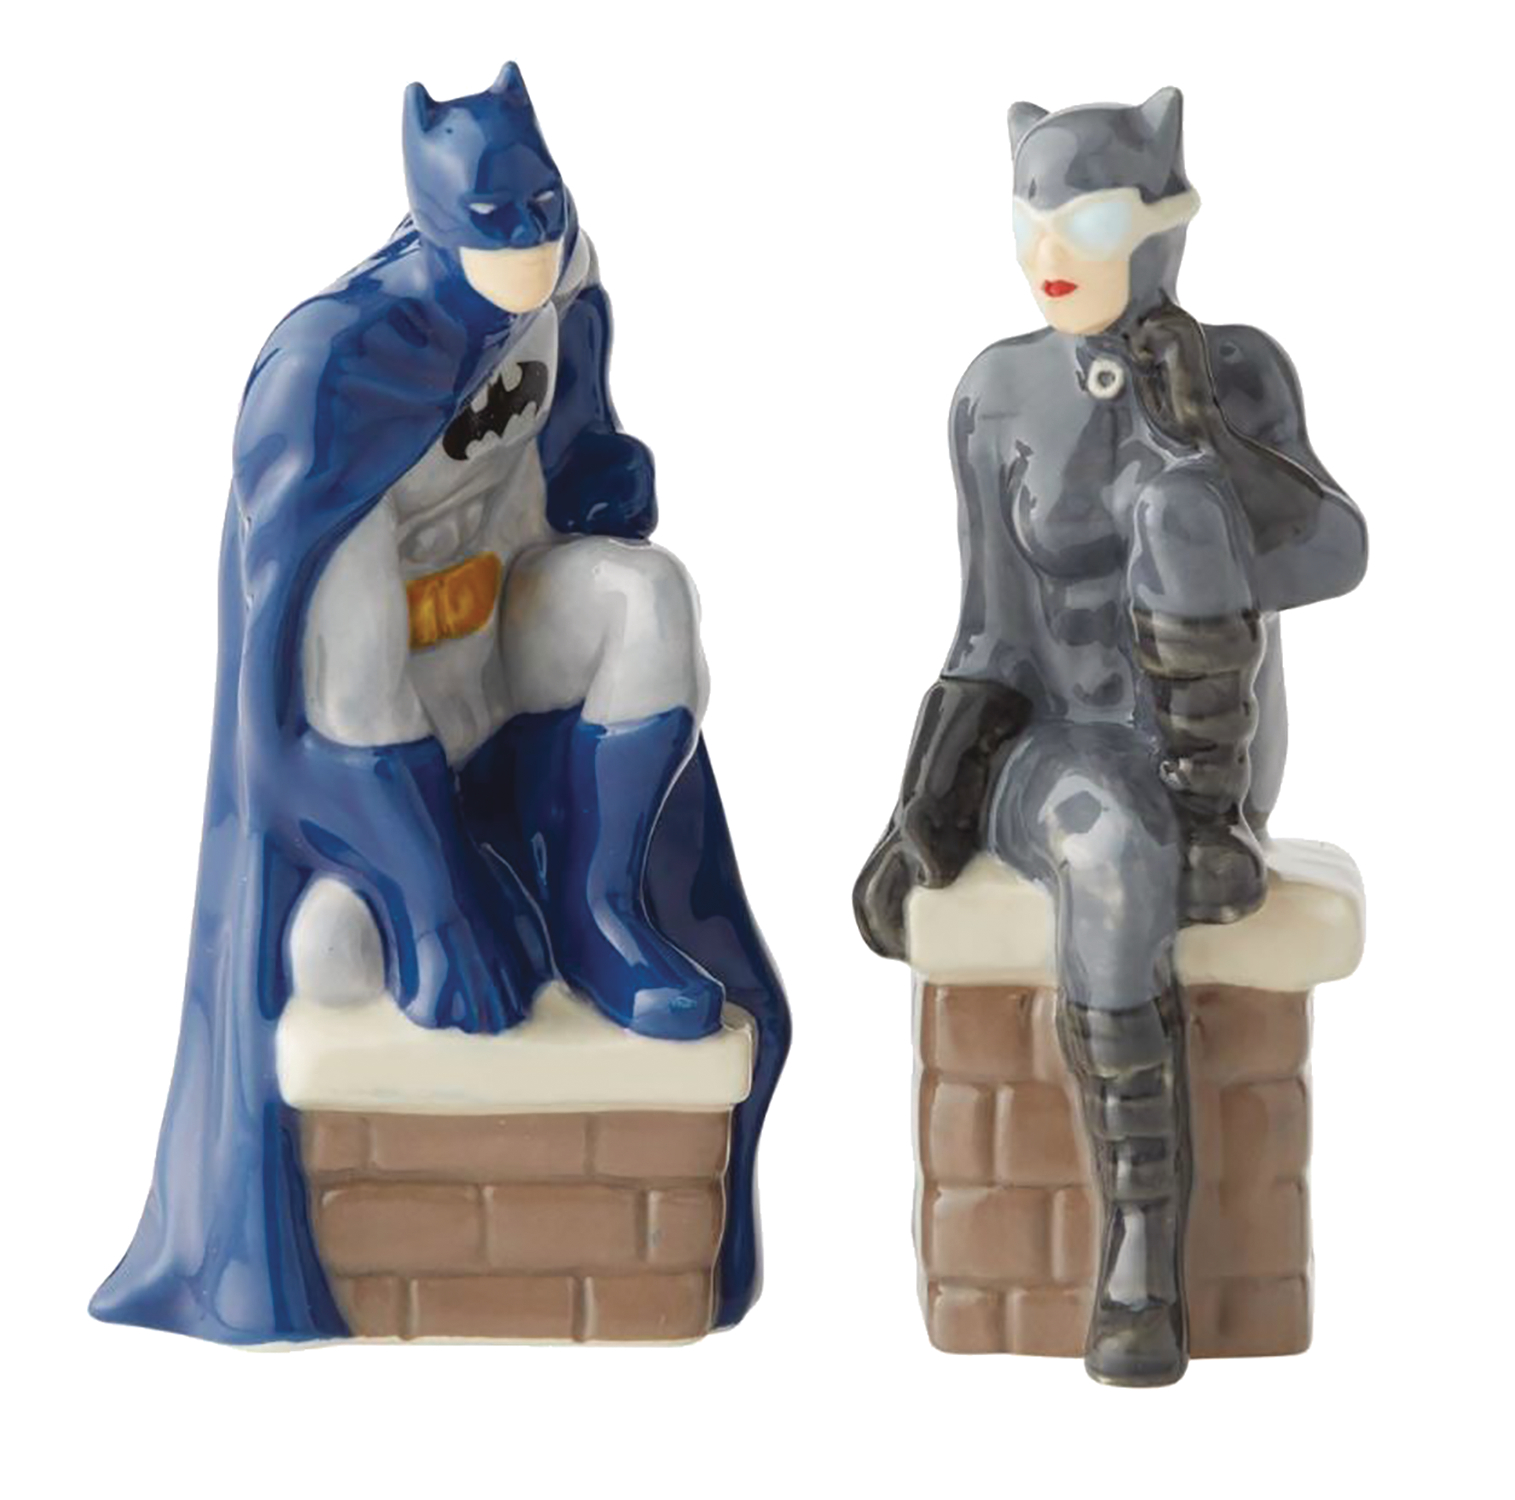 DC BATMAN AND CATWOMAN SALT & PEPPER SHAKER